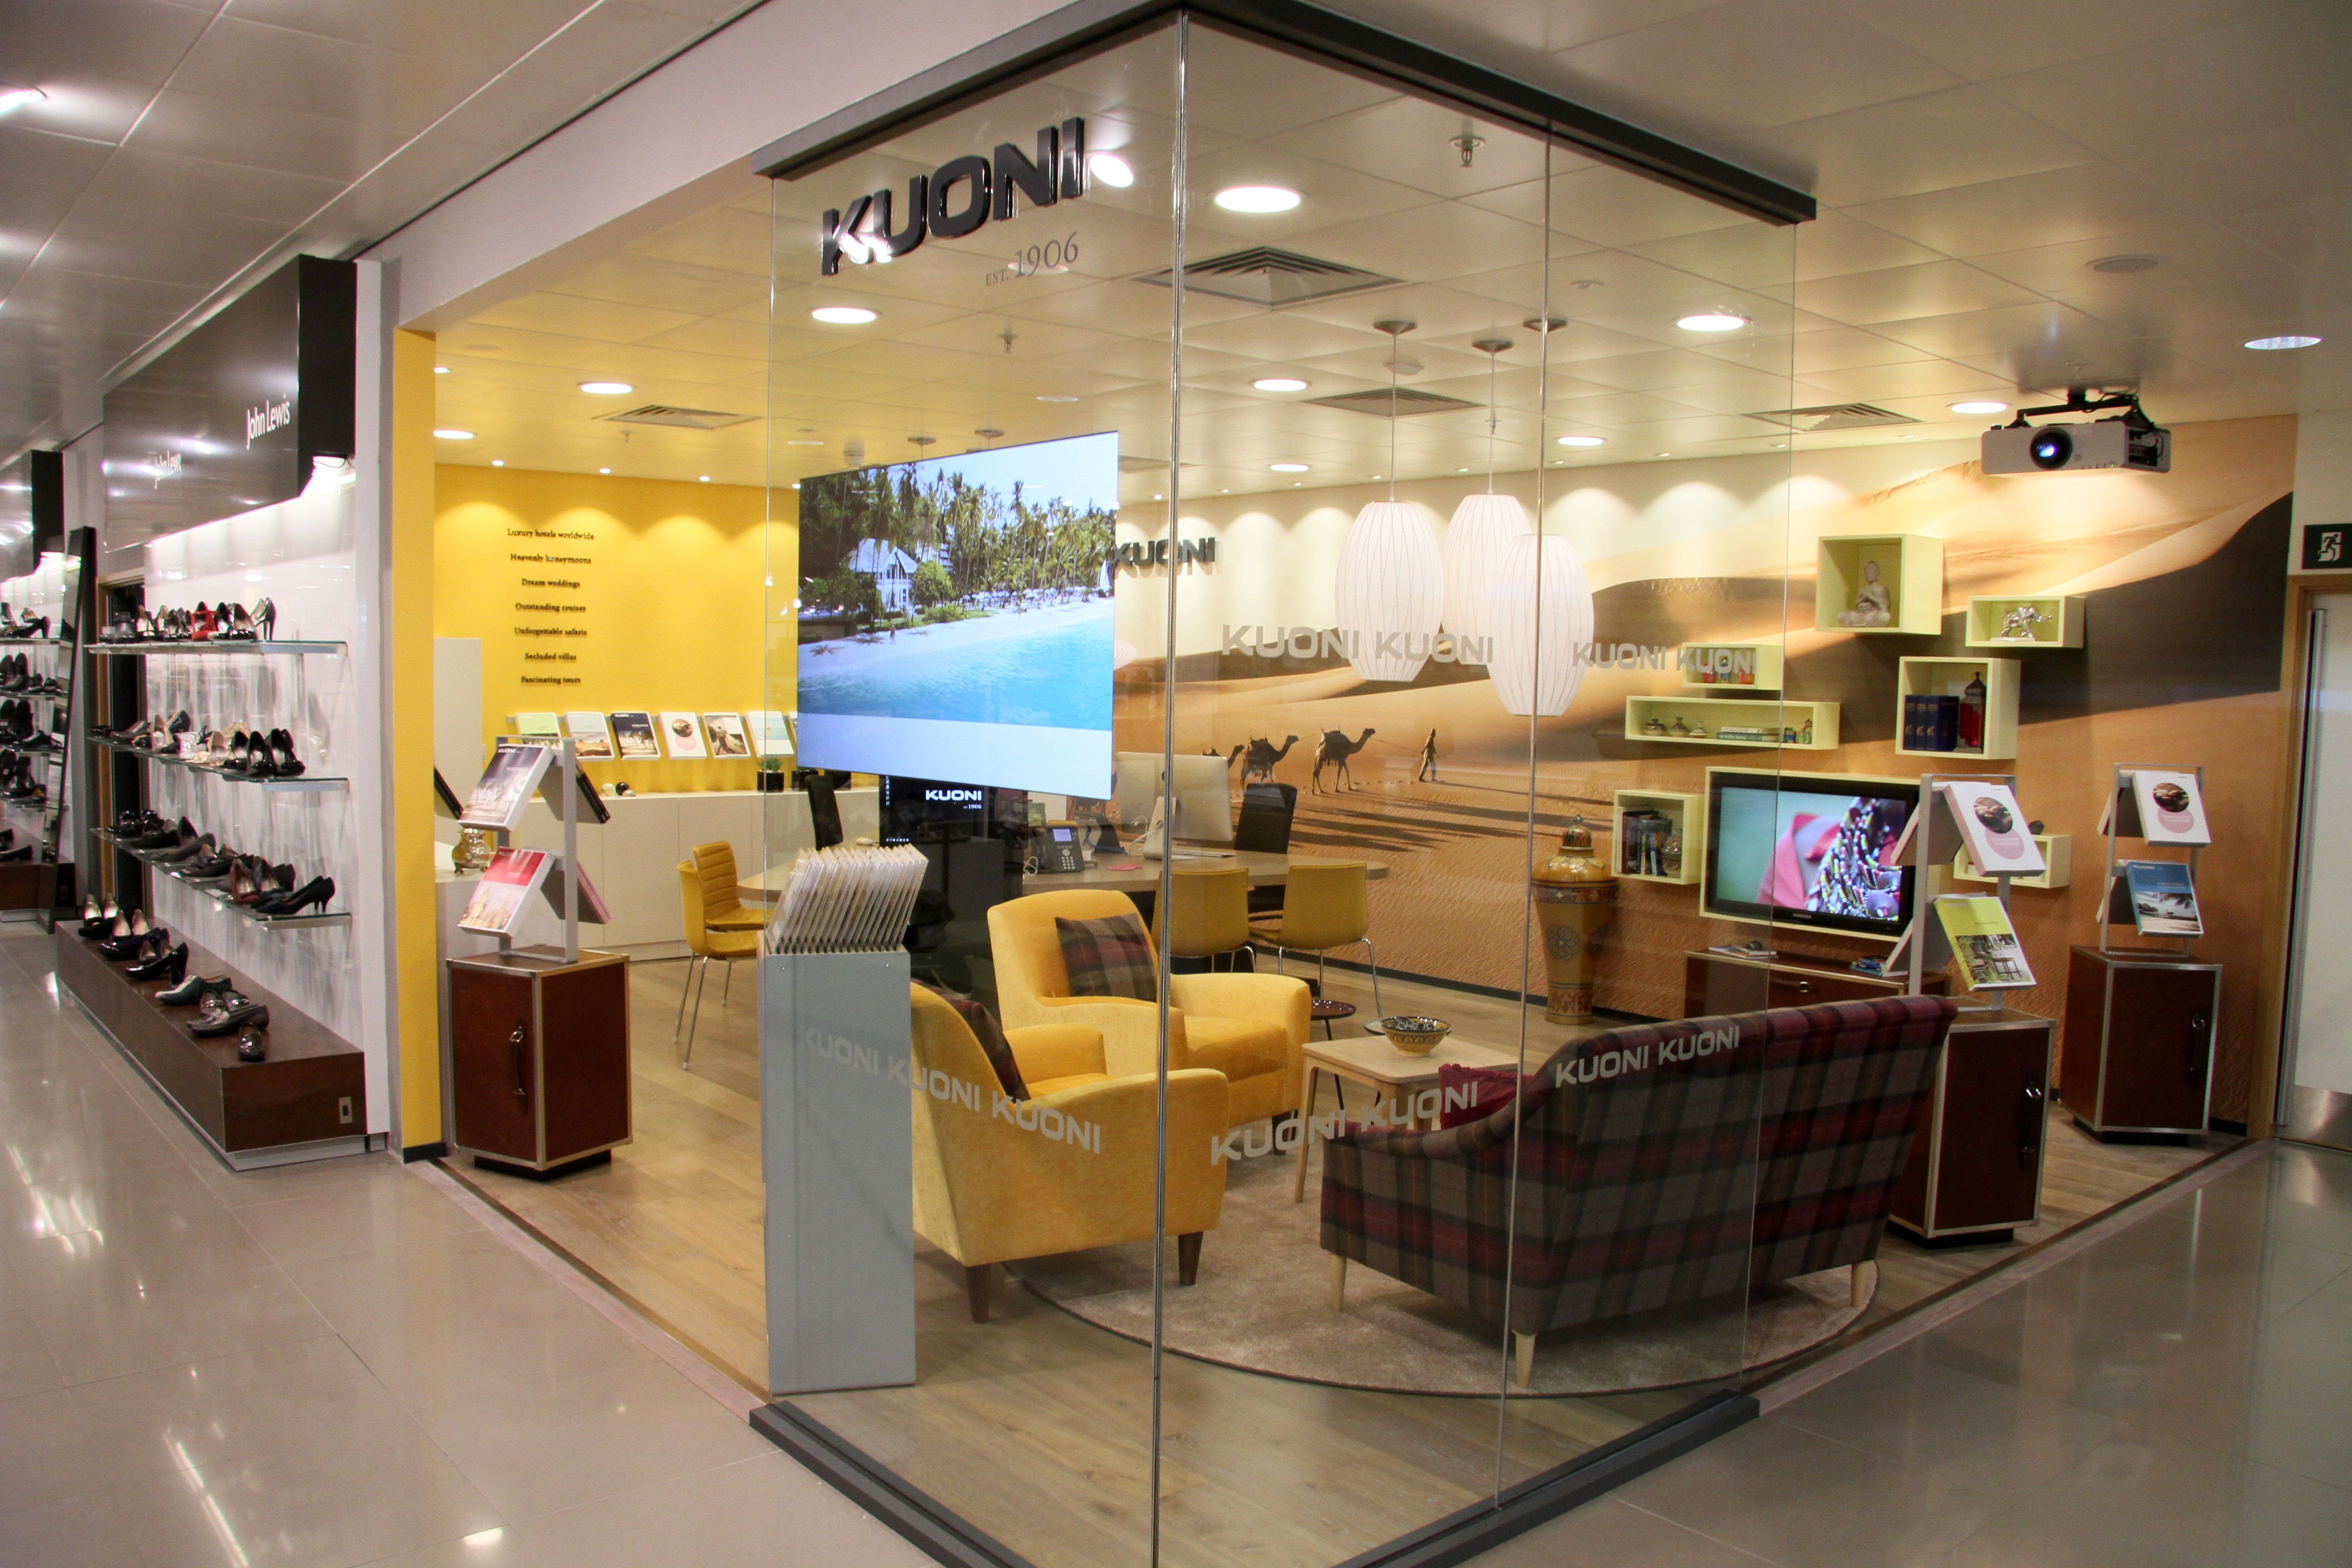 Plan your holiday at kuoni at john lewis cardiff travel for Office design cardiff